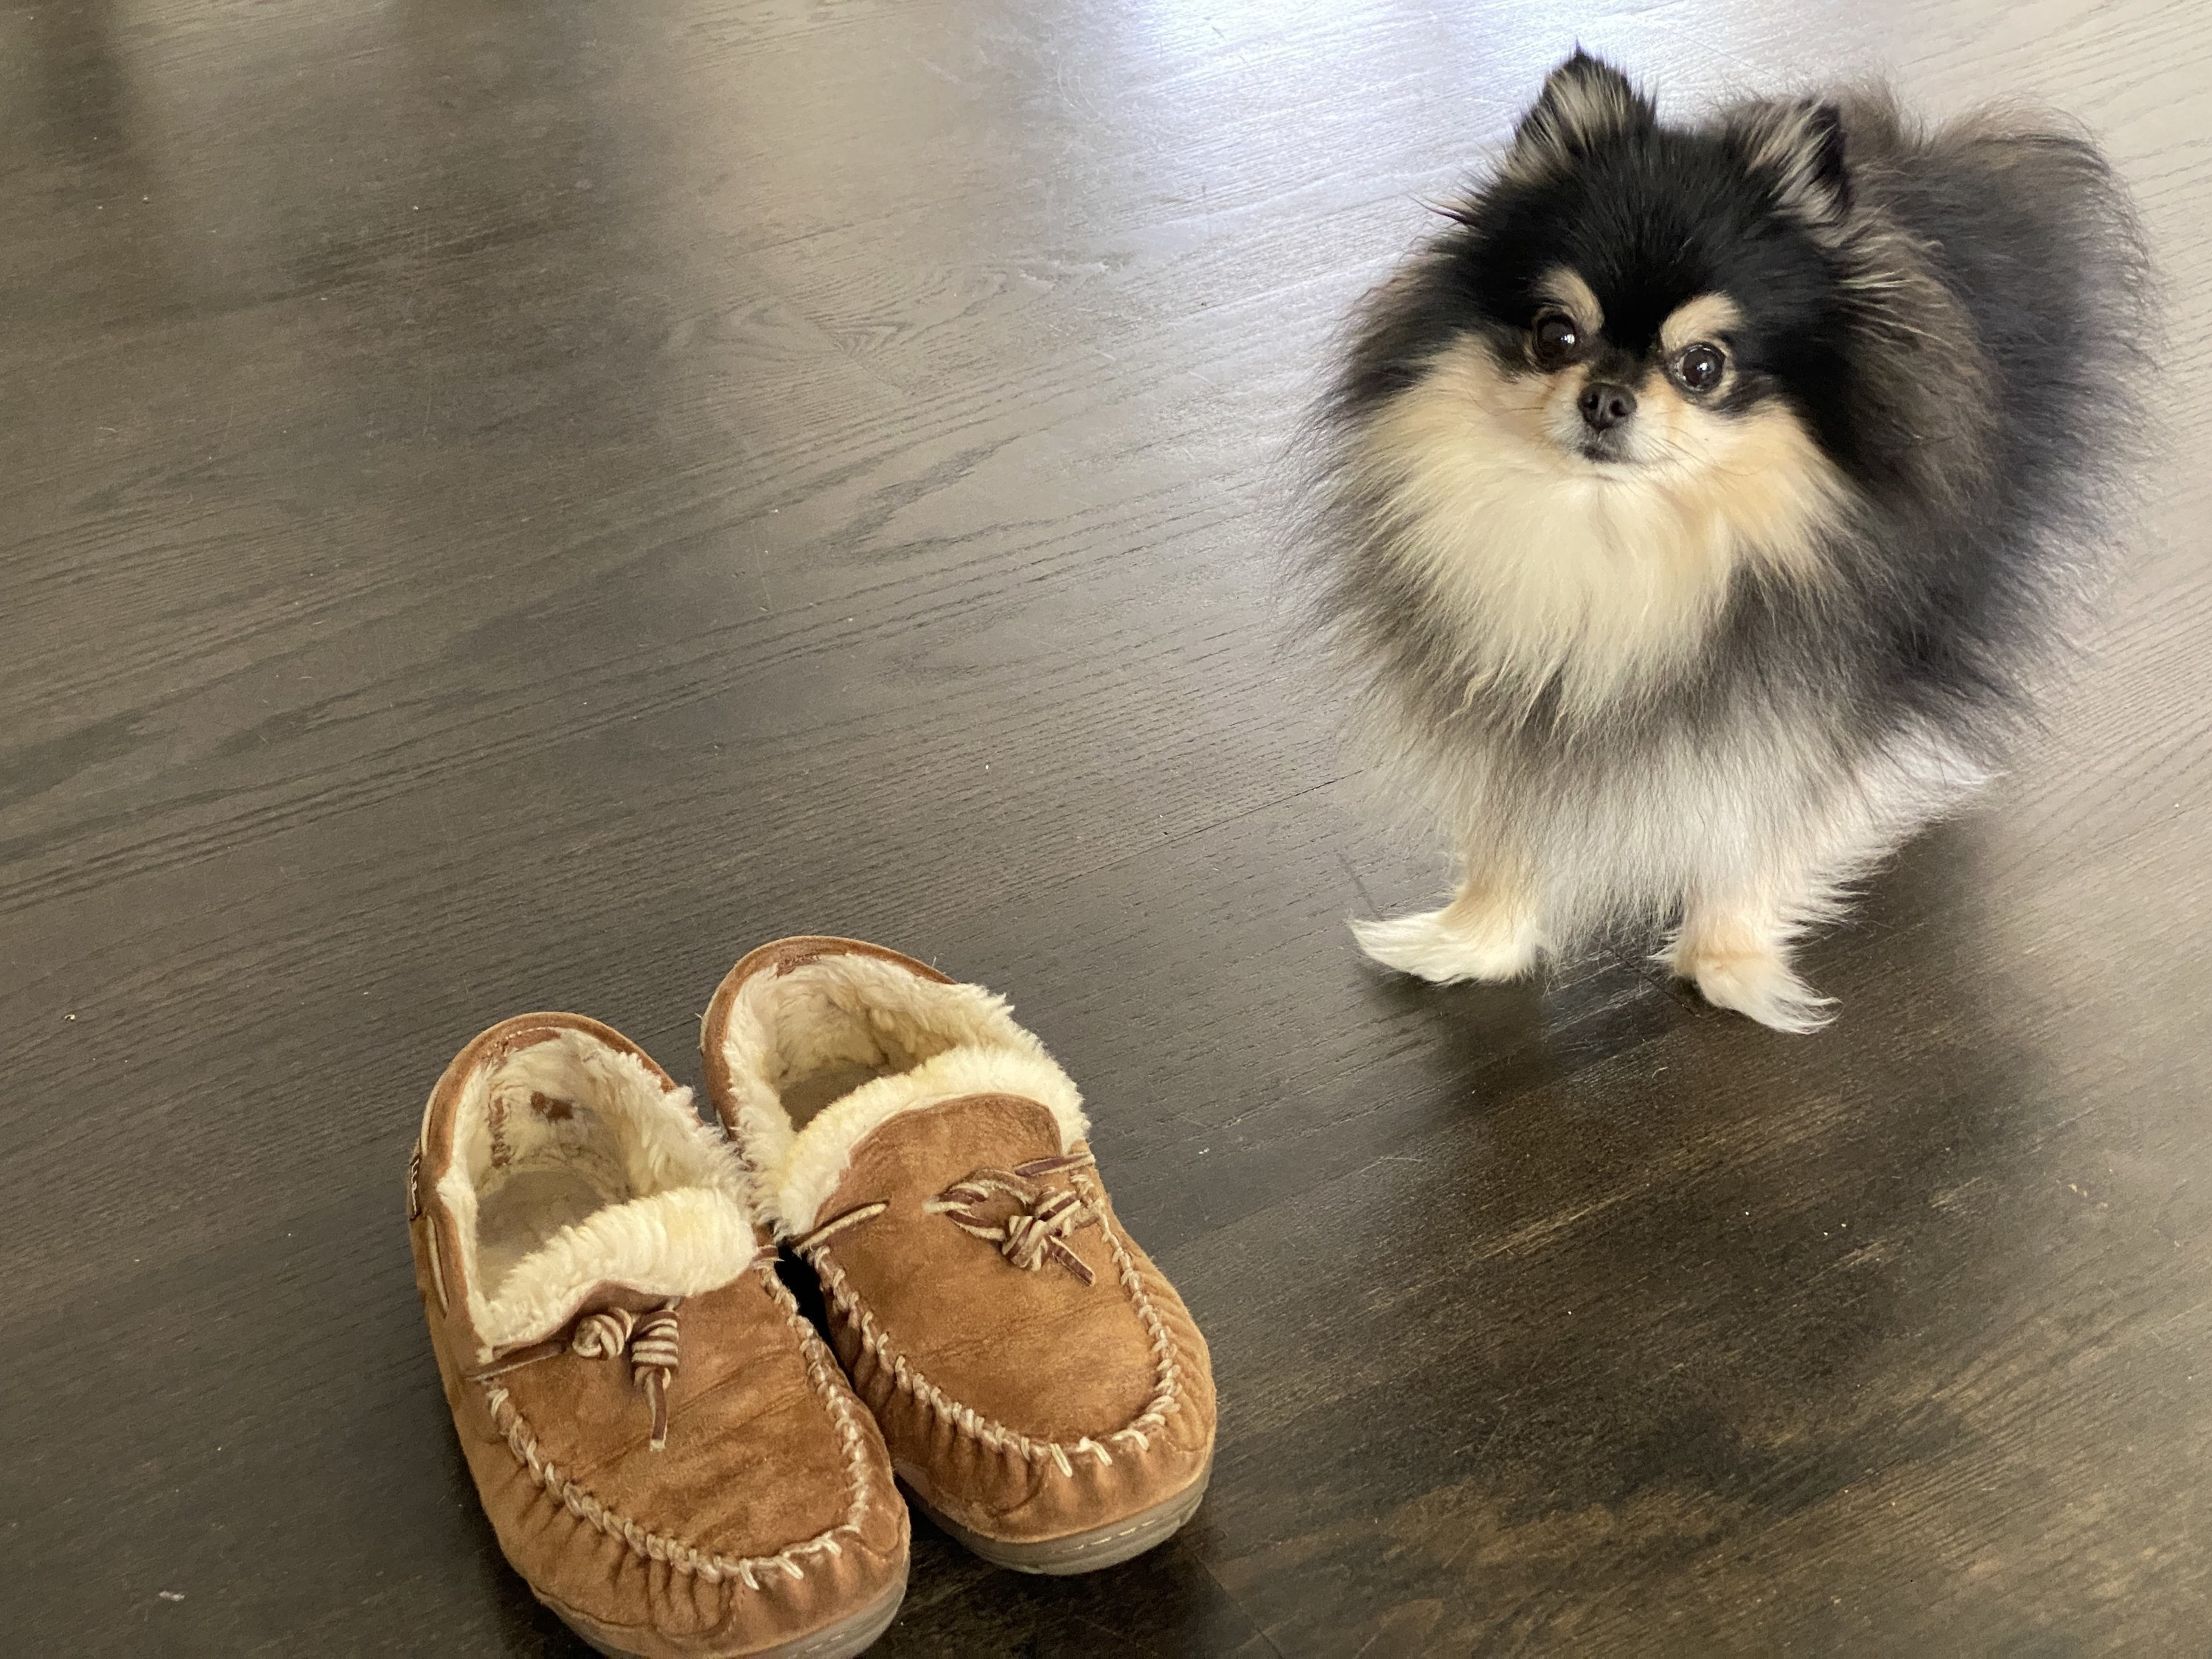 A very floofy black and tan Pomeranian stood next to the BuzzFeed editor's moccasins